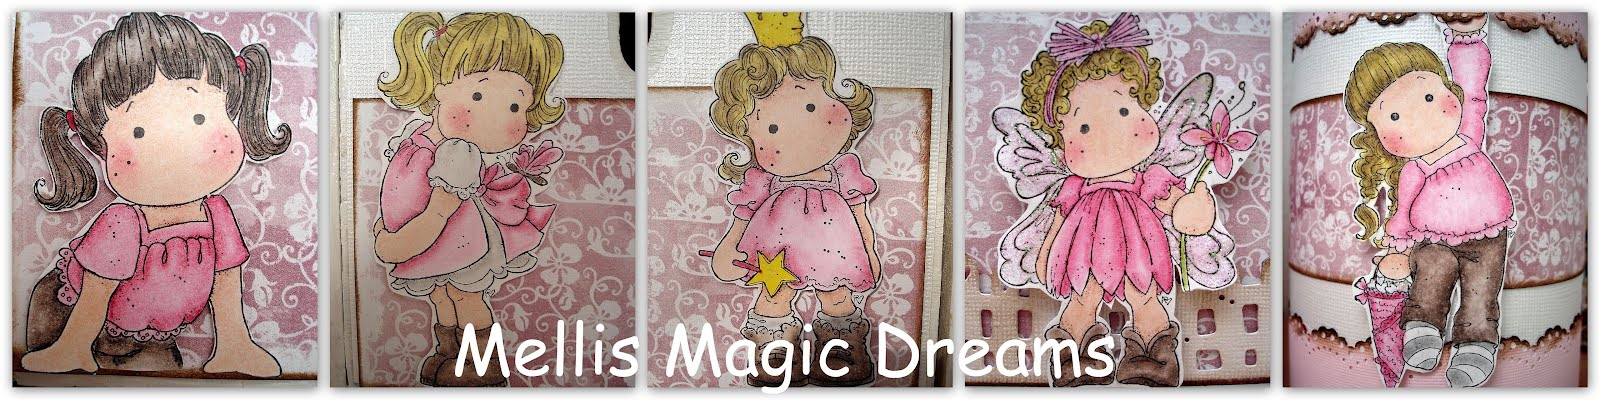 Mellis Magic Dreams